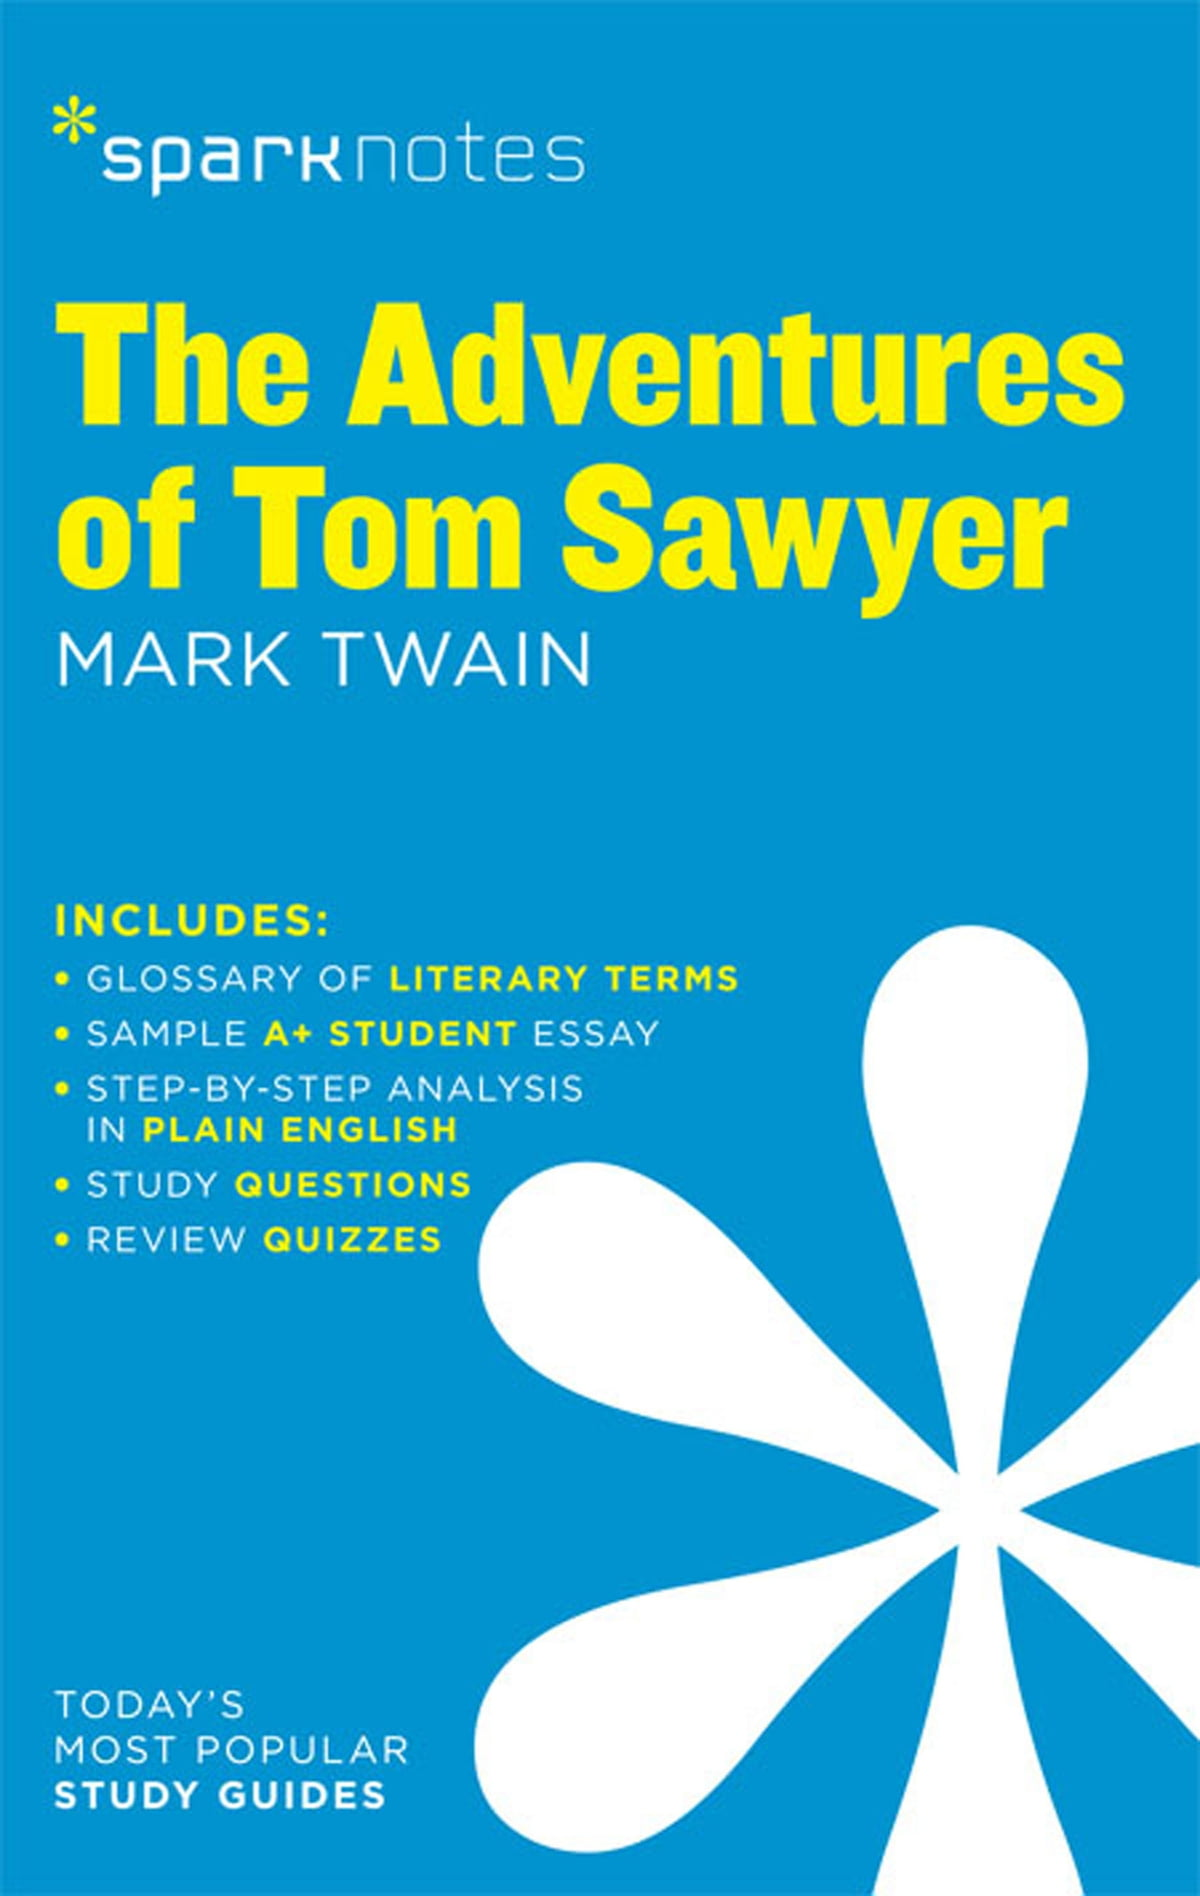 The Adventures of Tom Sawyer SparkNotes Literature Guide eBook by  SparkNotes - 9781411471337 | Rakuten Kobo